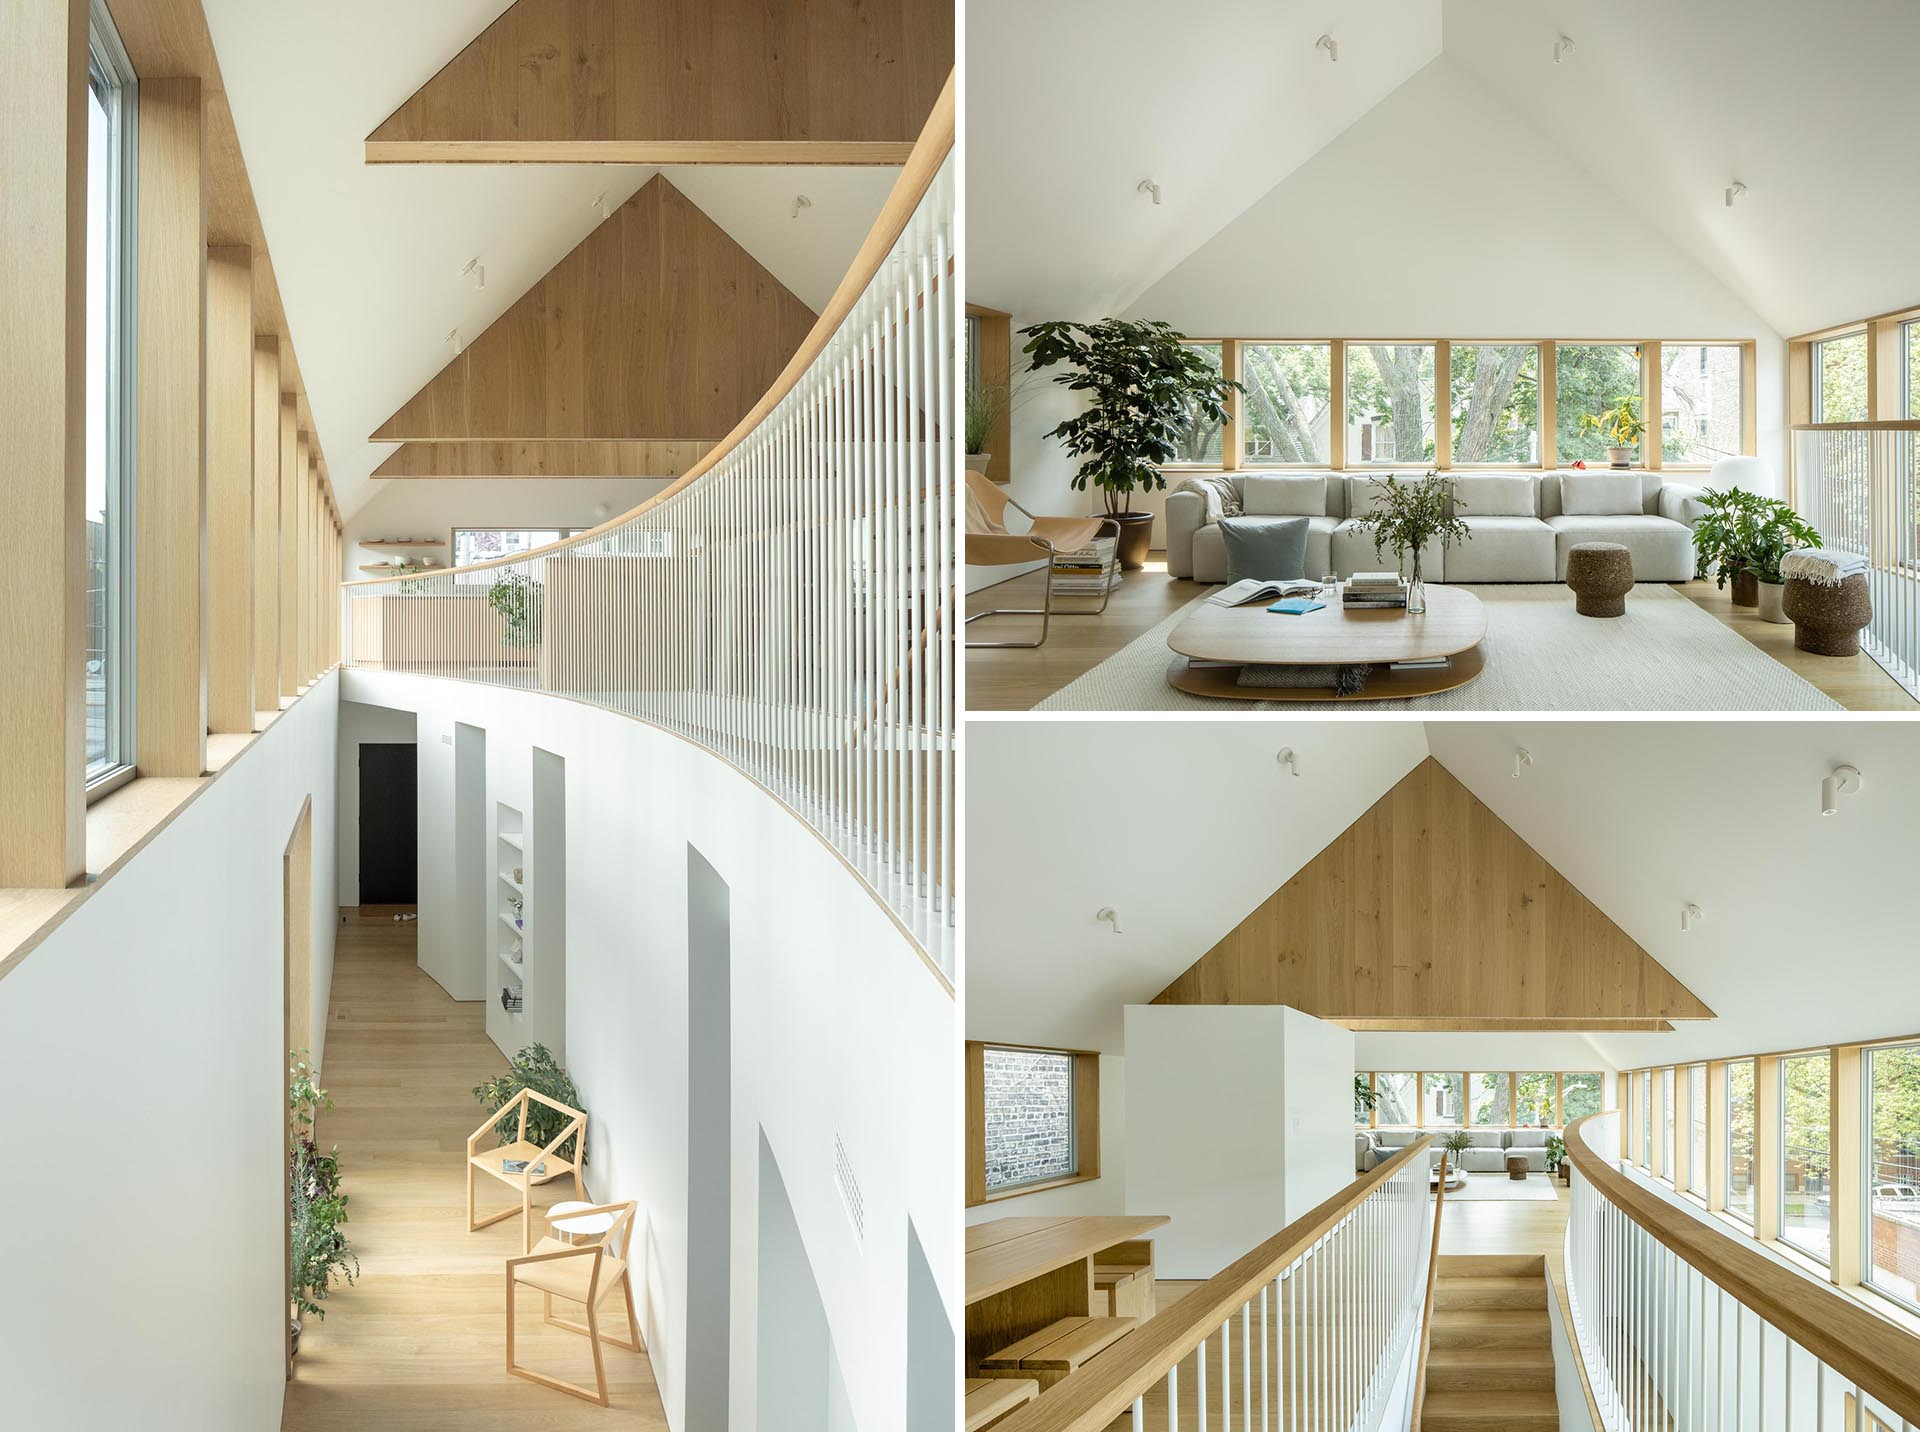 A modern white and wood home interior.